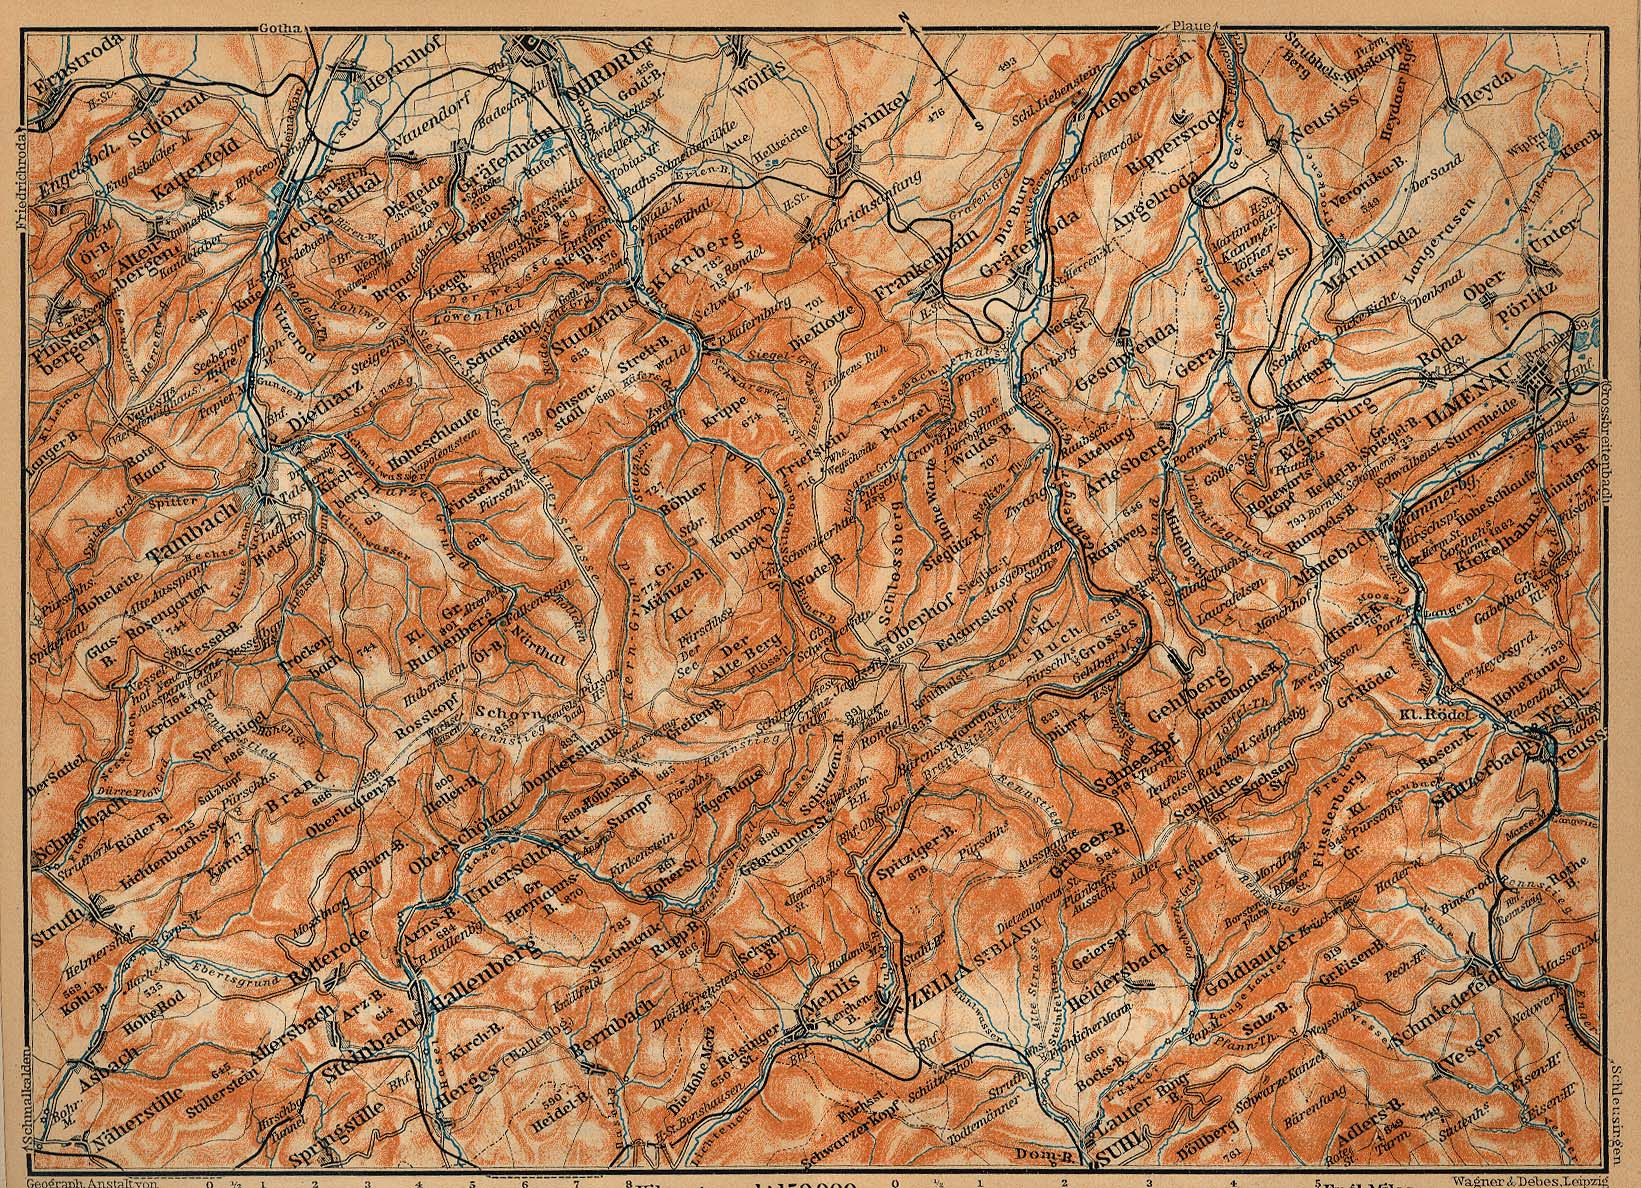 Thuringian Forest Map, East Part, Germany 1910